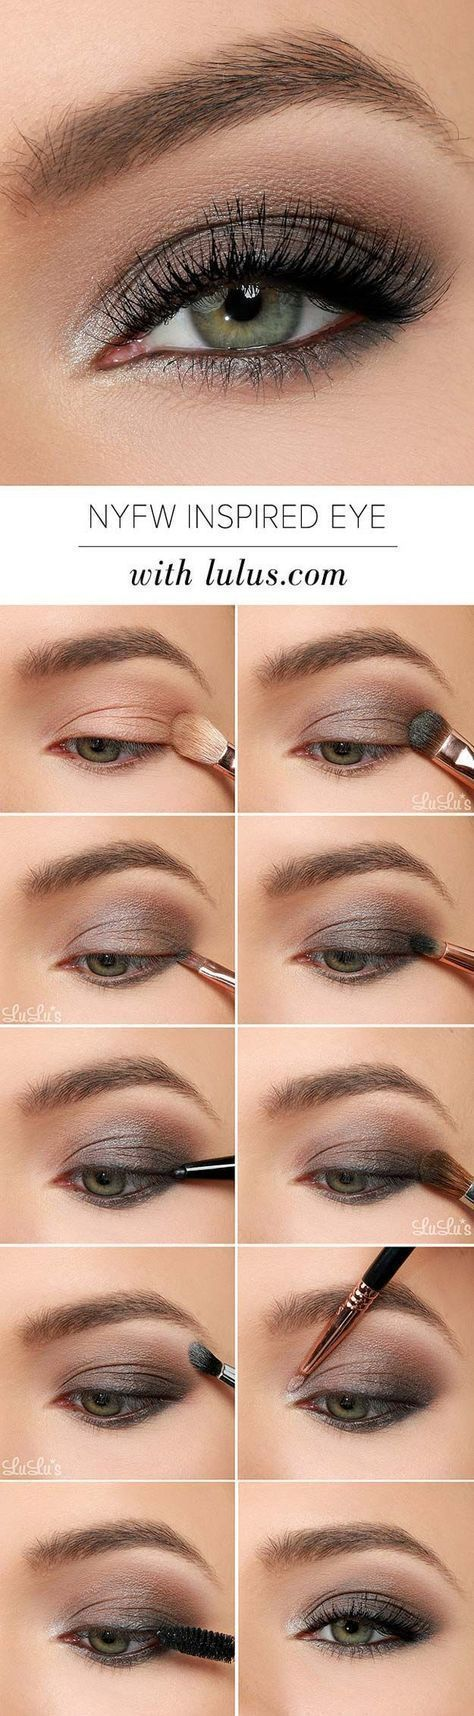 Best Eyeshadow Tutorials - NYFW Inspired Eye Shadow Tutorial - Easy Step by Step How To For Eye Shadow - Cool Makeup Tricks and Eye Makeup Tutorial With Instructions - Quick Ways to Do Smoky Eye, Natural Makeup, Looks for Day and Evening, Brown and Blue Eyes - Cool Ideas for Beginners and Teens http://diyprojectsforteens.com/best-eyeshadow-tutorials #makeuptricks #eyemakeup #blueeyemakeup #makeuplooksforbrowneyes #naturalmakeup